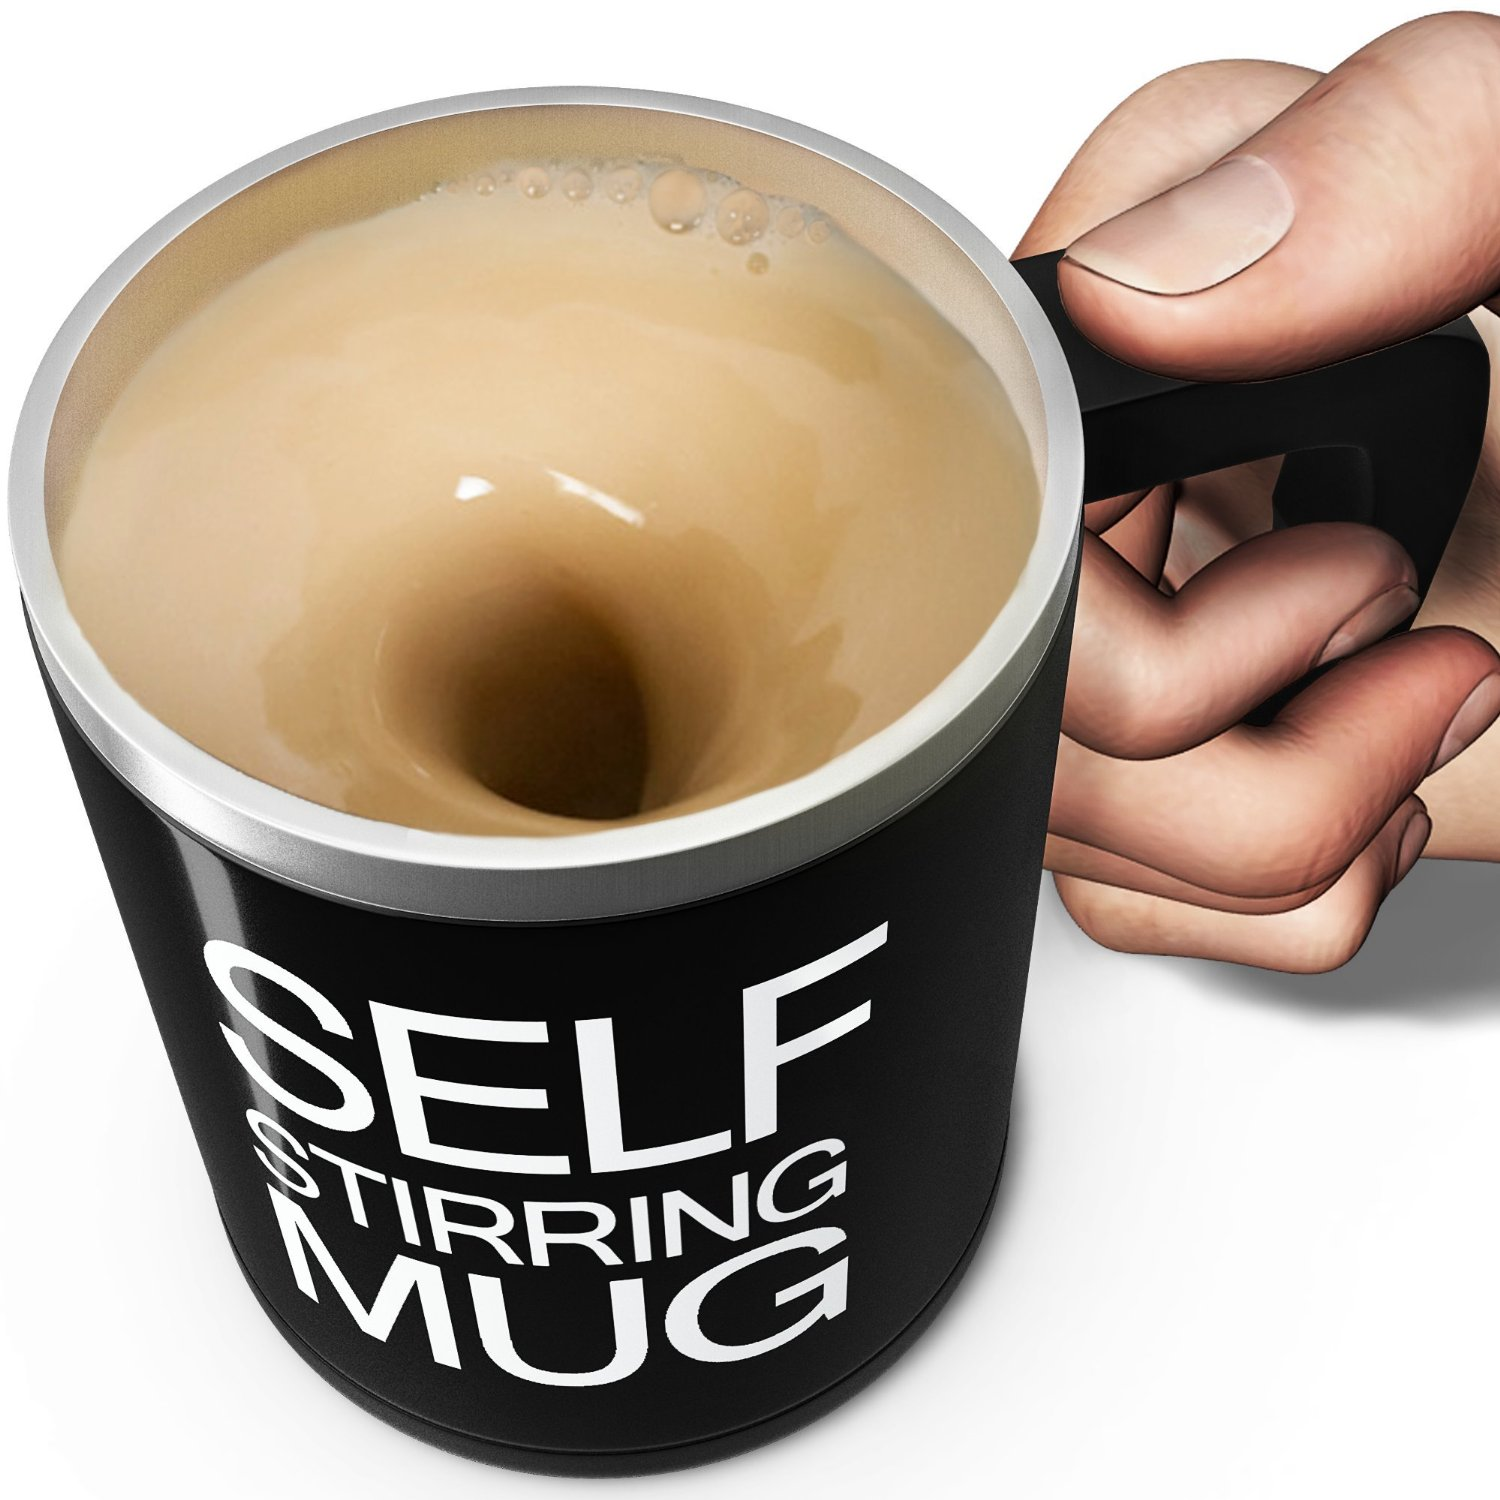 71 epic gift ideas for your boyfriend for Cool glass coffee mugs